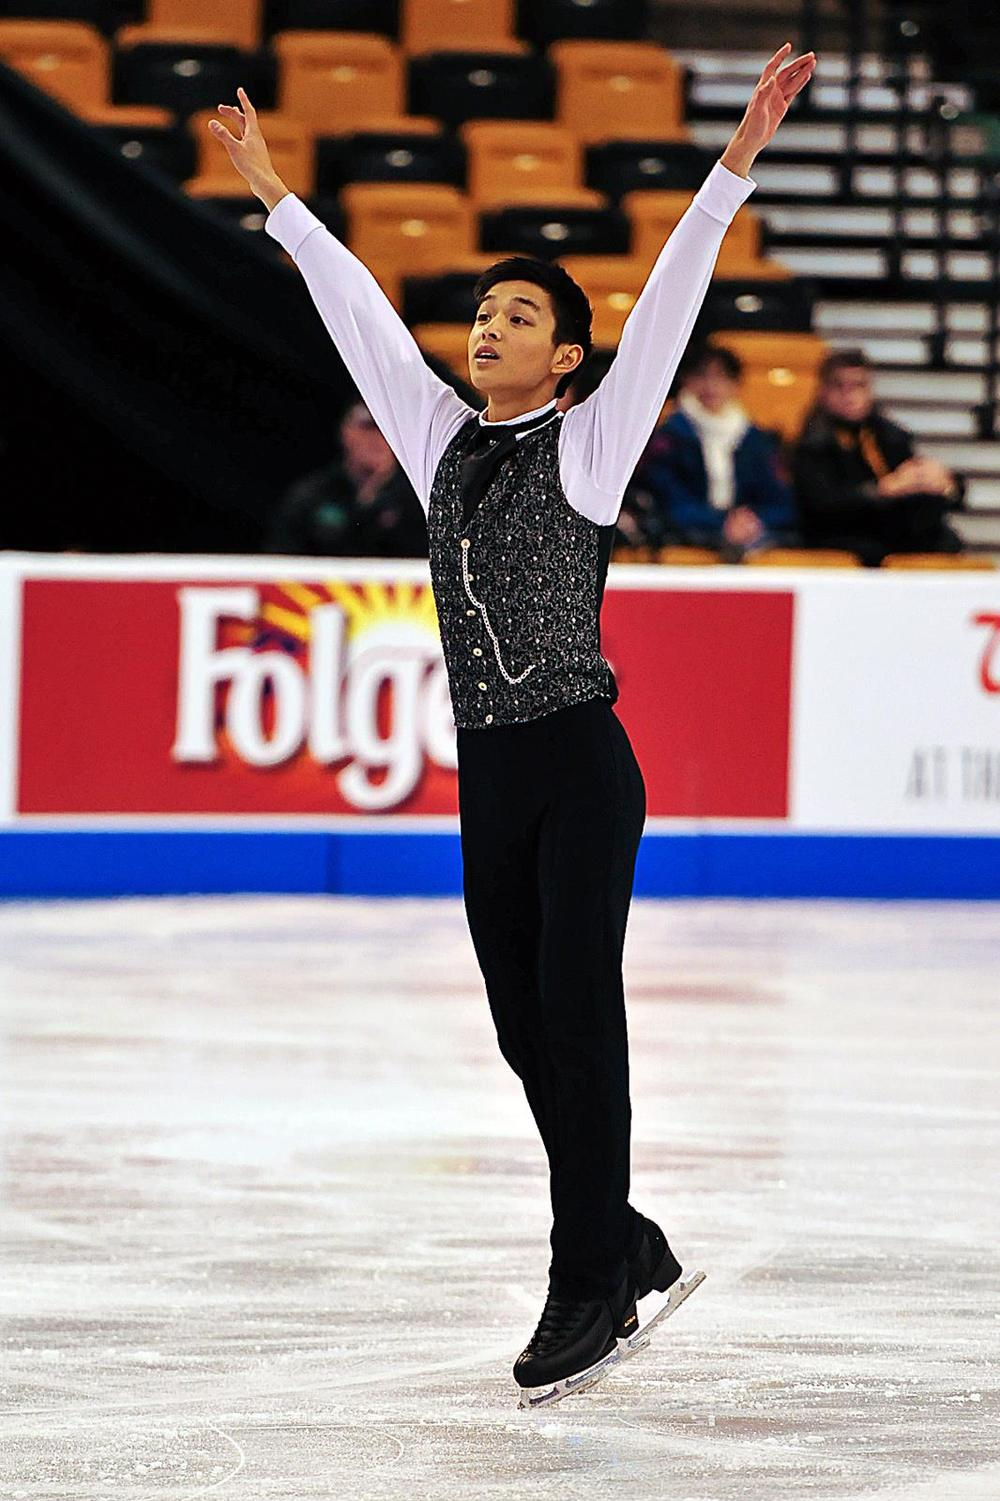 Kevin at the 2014 US Championships